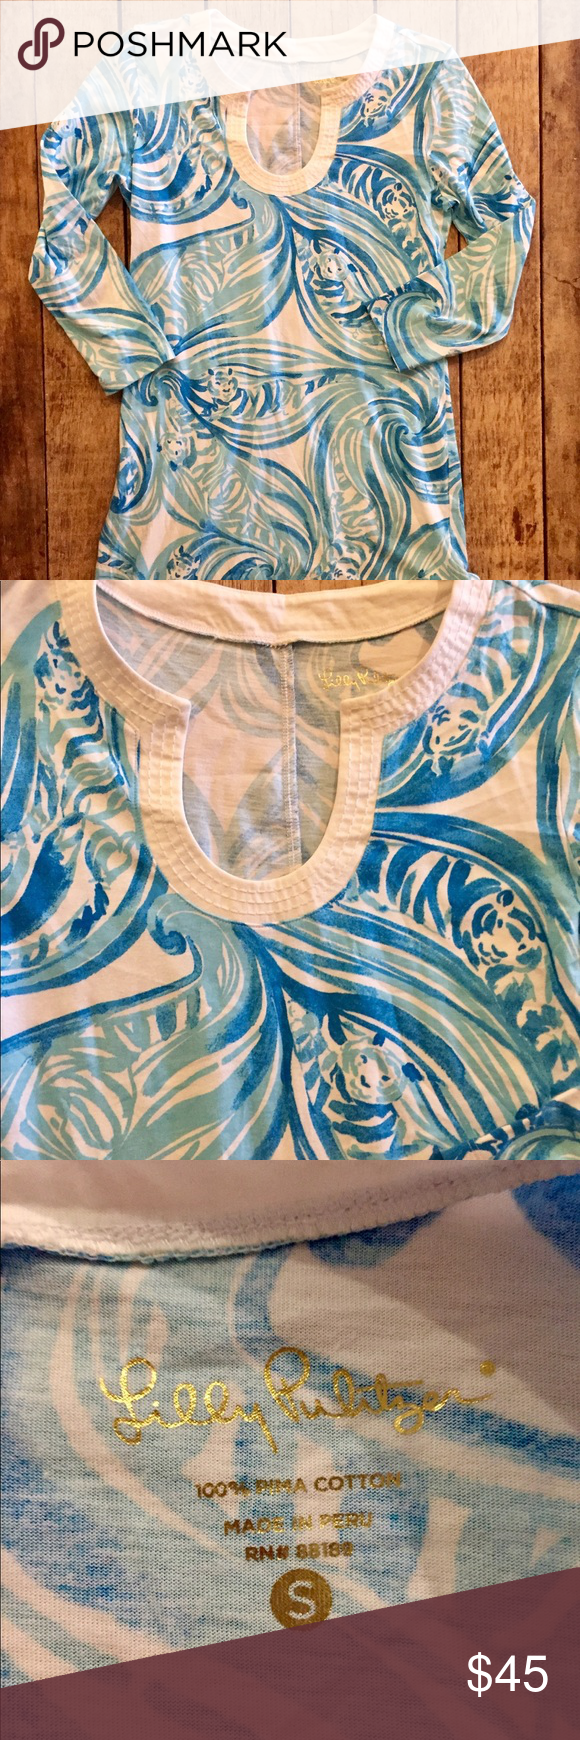 Lilly Pulitzer cotton dress S